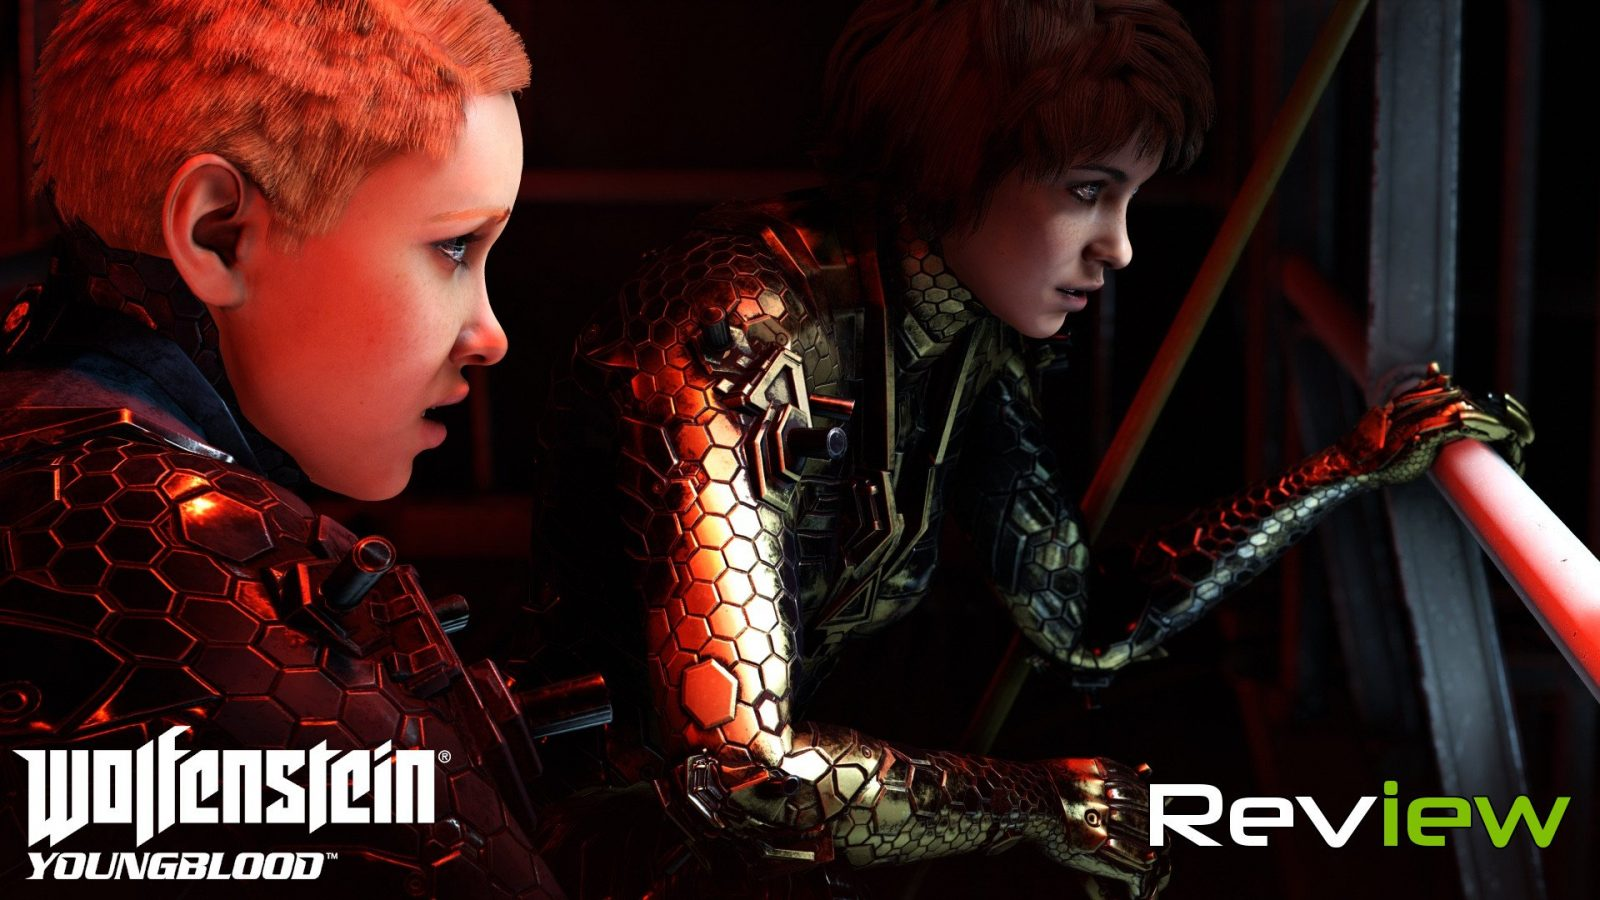 Wolfenstein Youngblood Review- Old Meets New